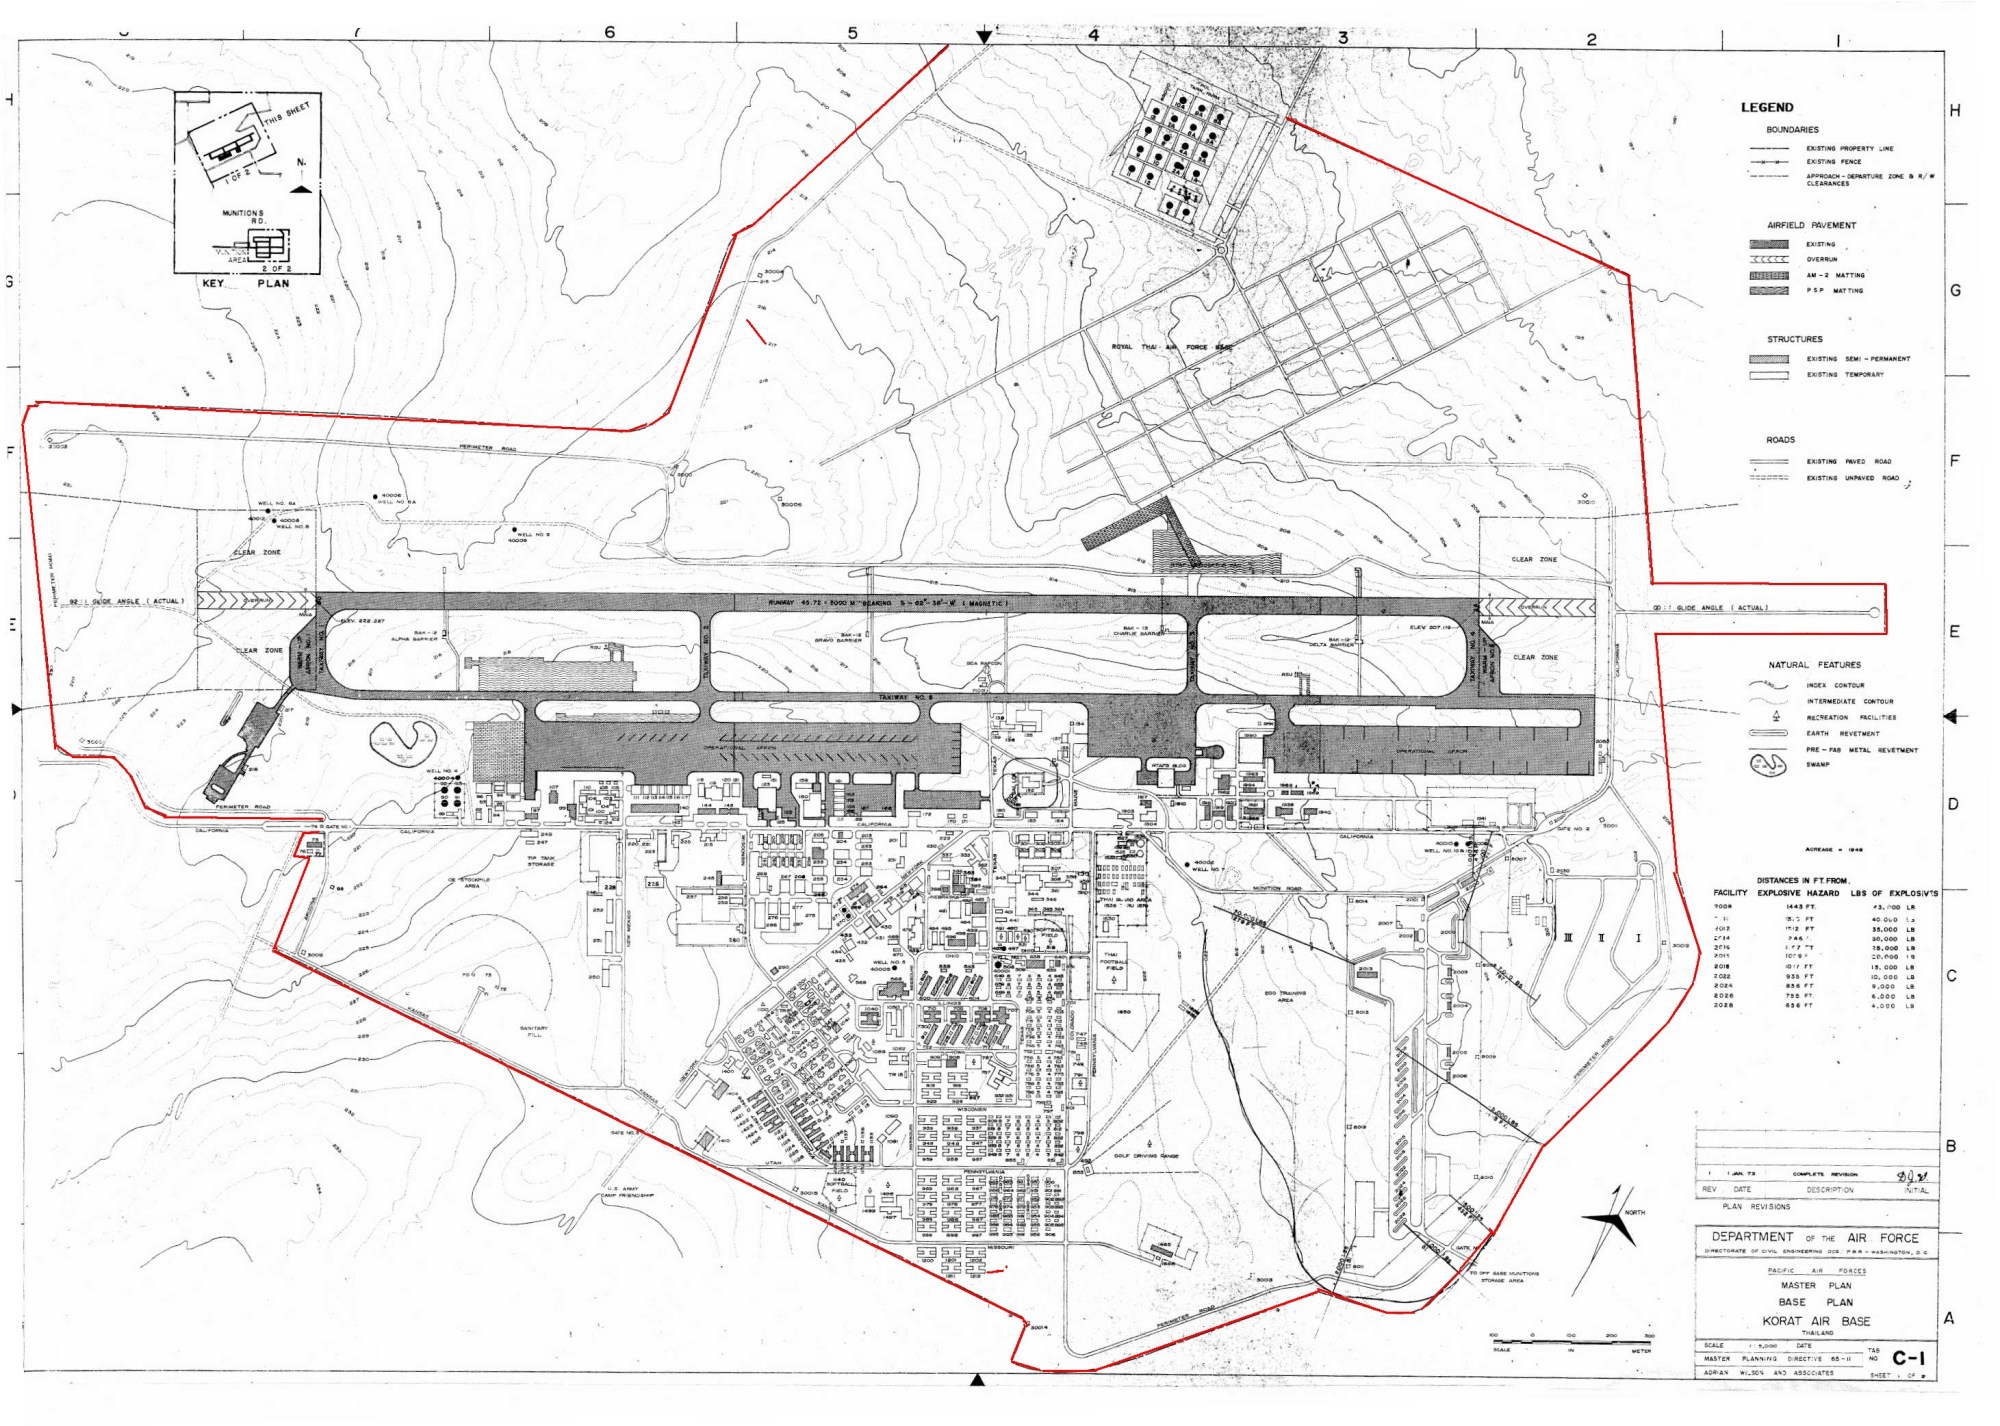 hight resolution of brett watterson sent me this map of korat rtafb which he highlighted the full perimeter